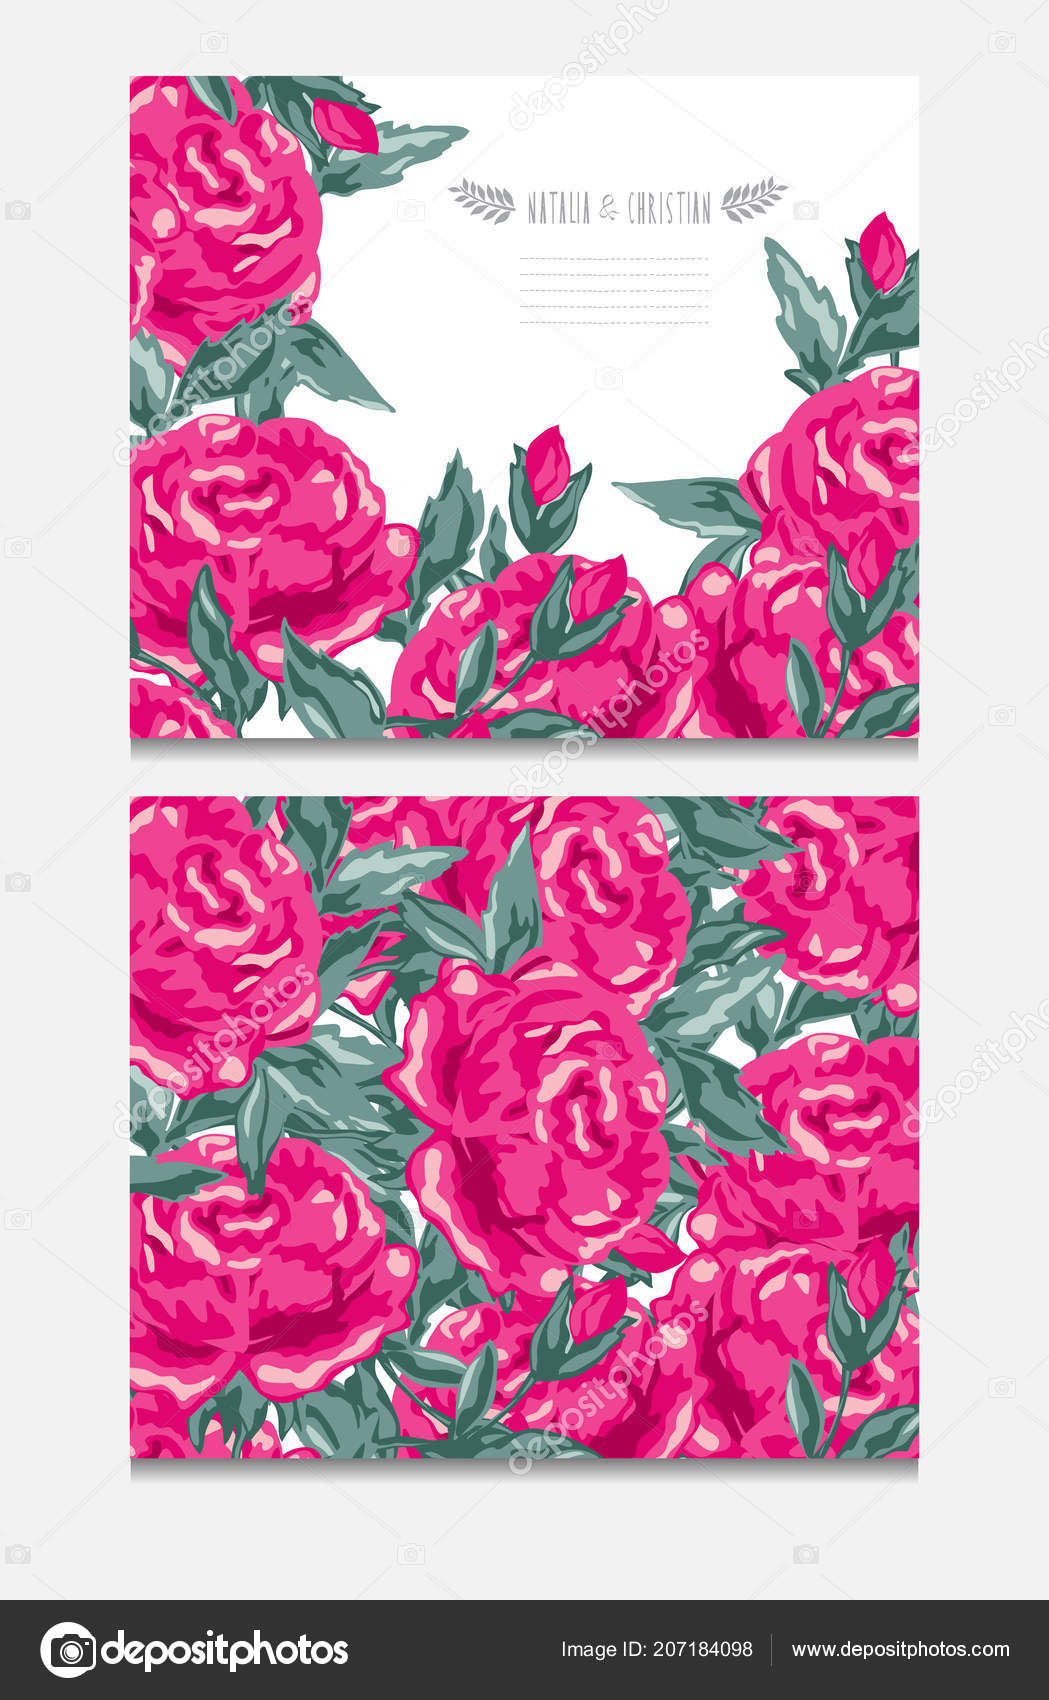 Elegant Cards Decorative Peony Flowers Design Elements Can Used